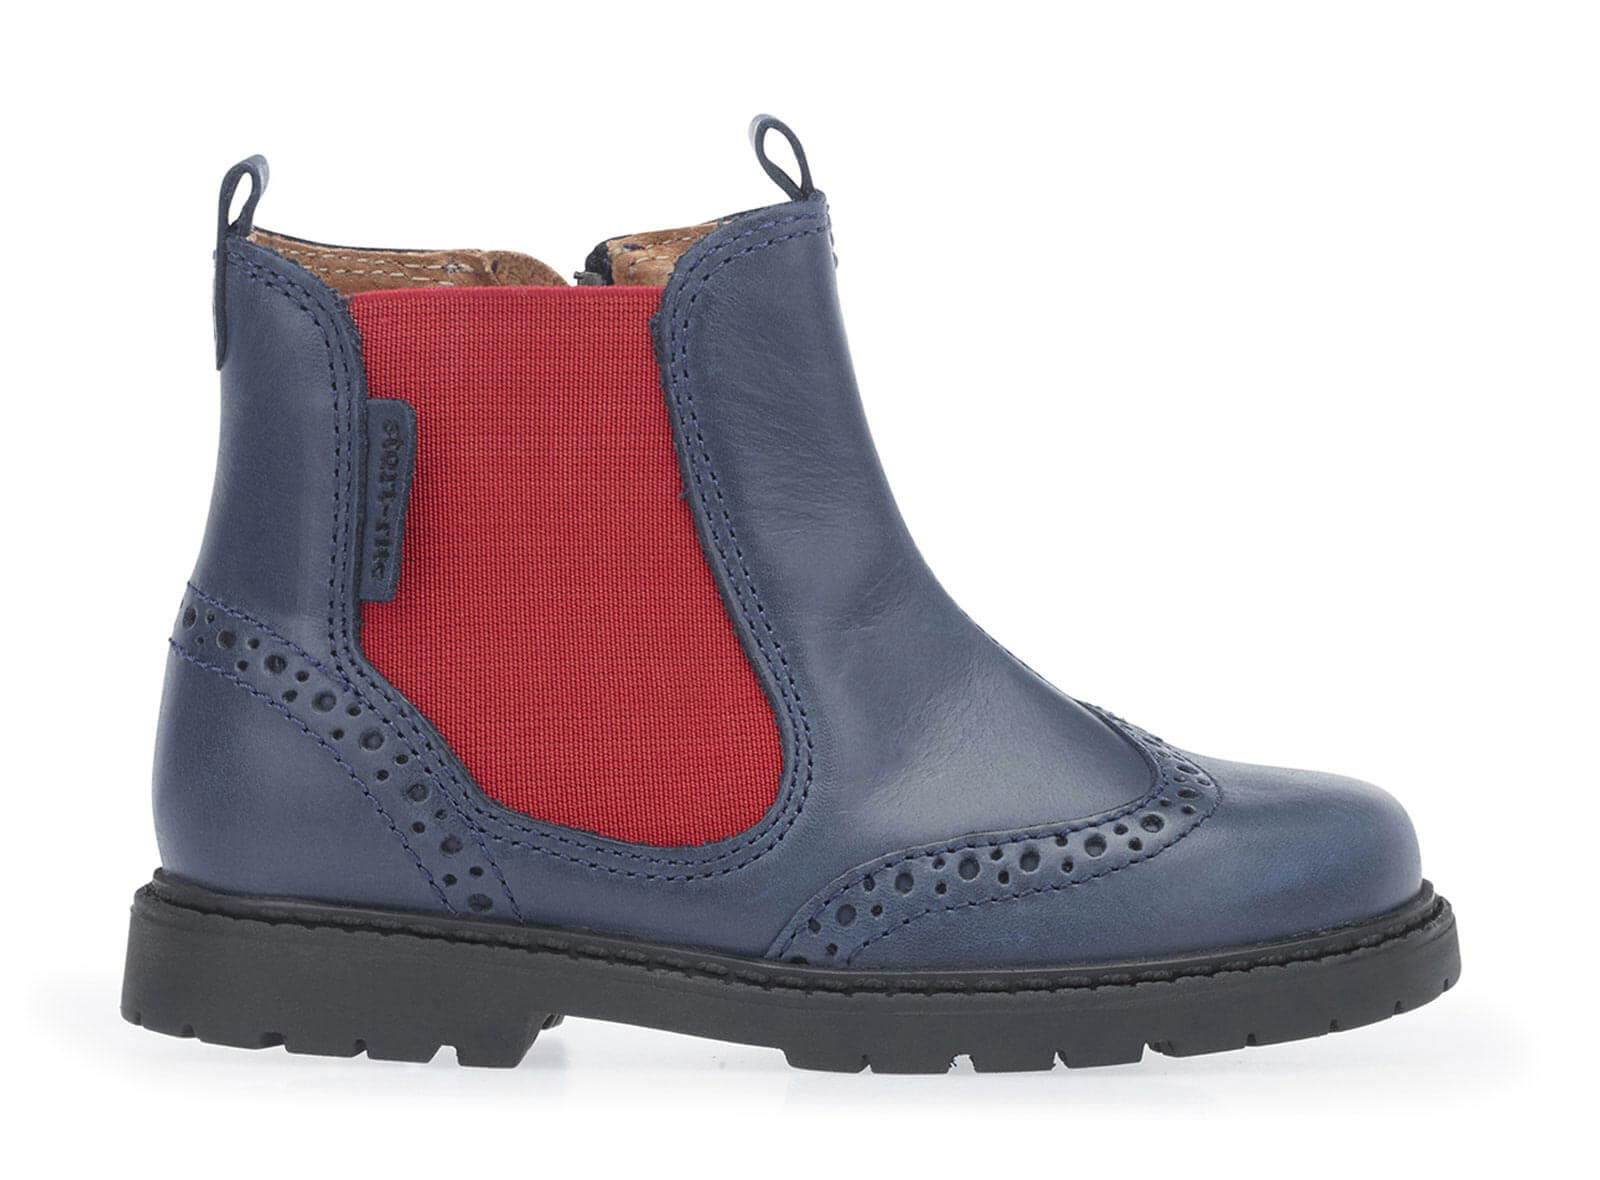 Digby boots